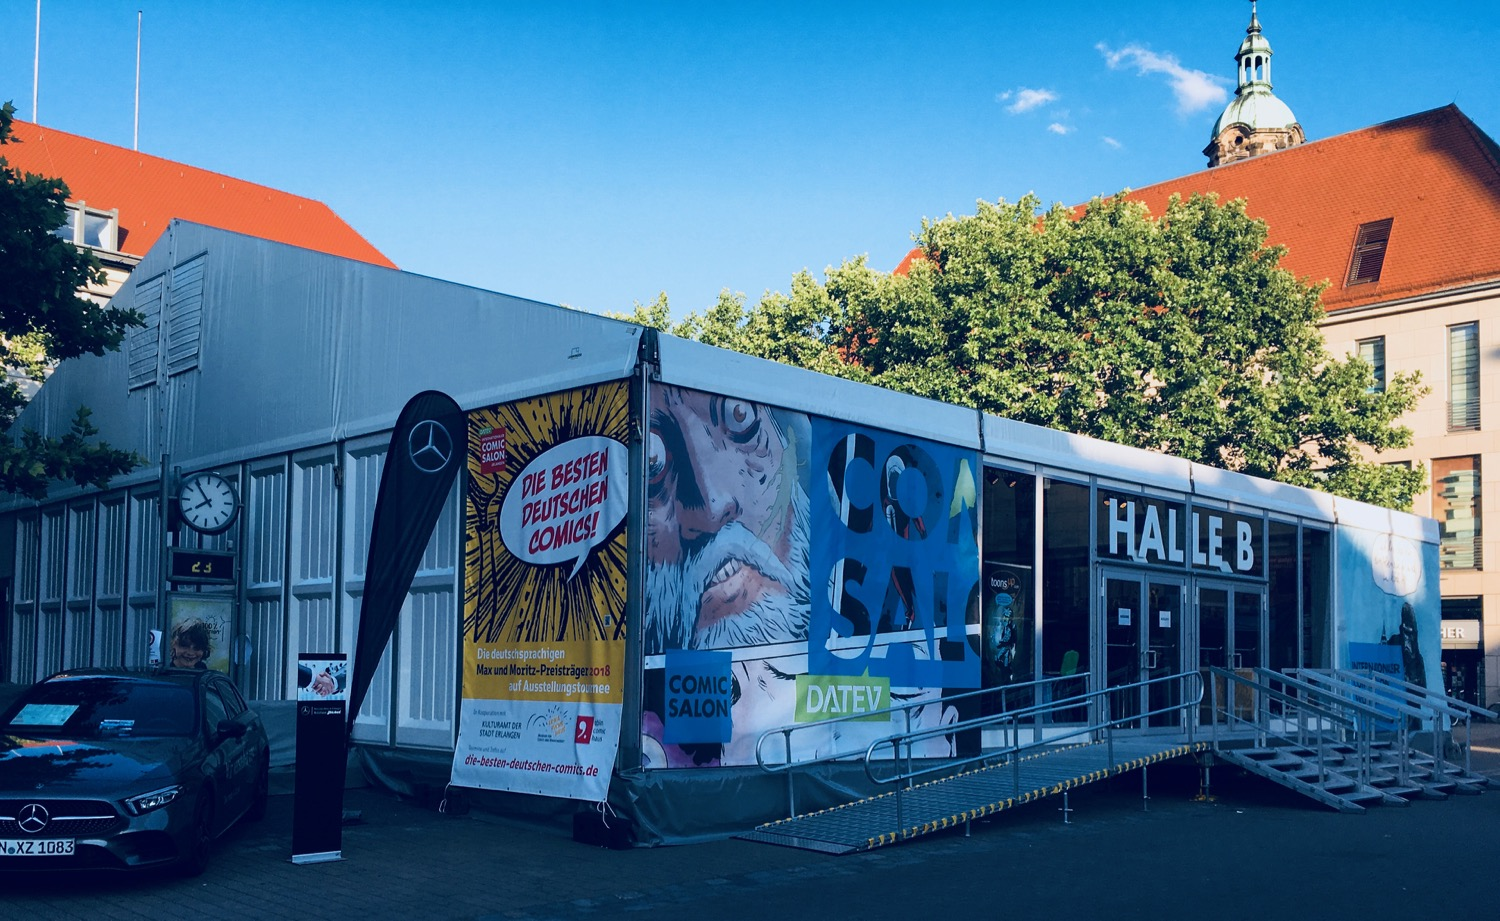 Comic Salon Erlangen 2018: Halle B